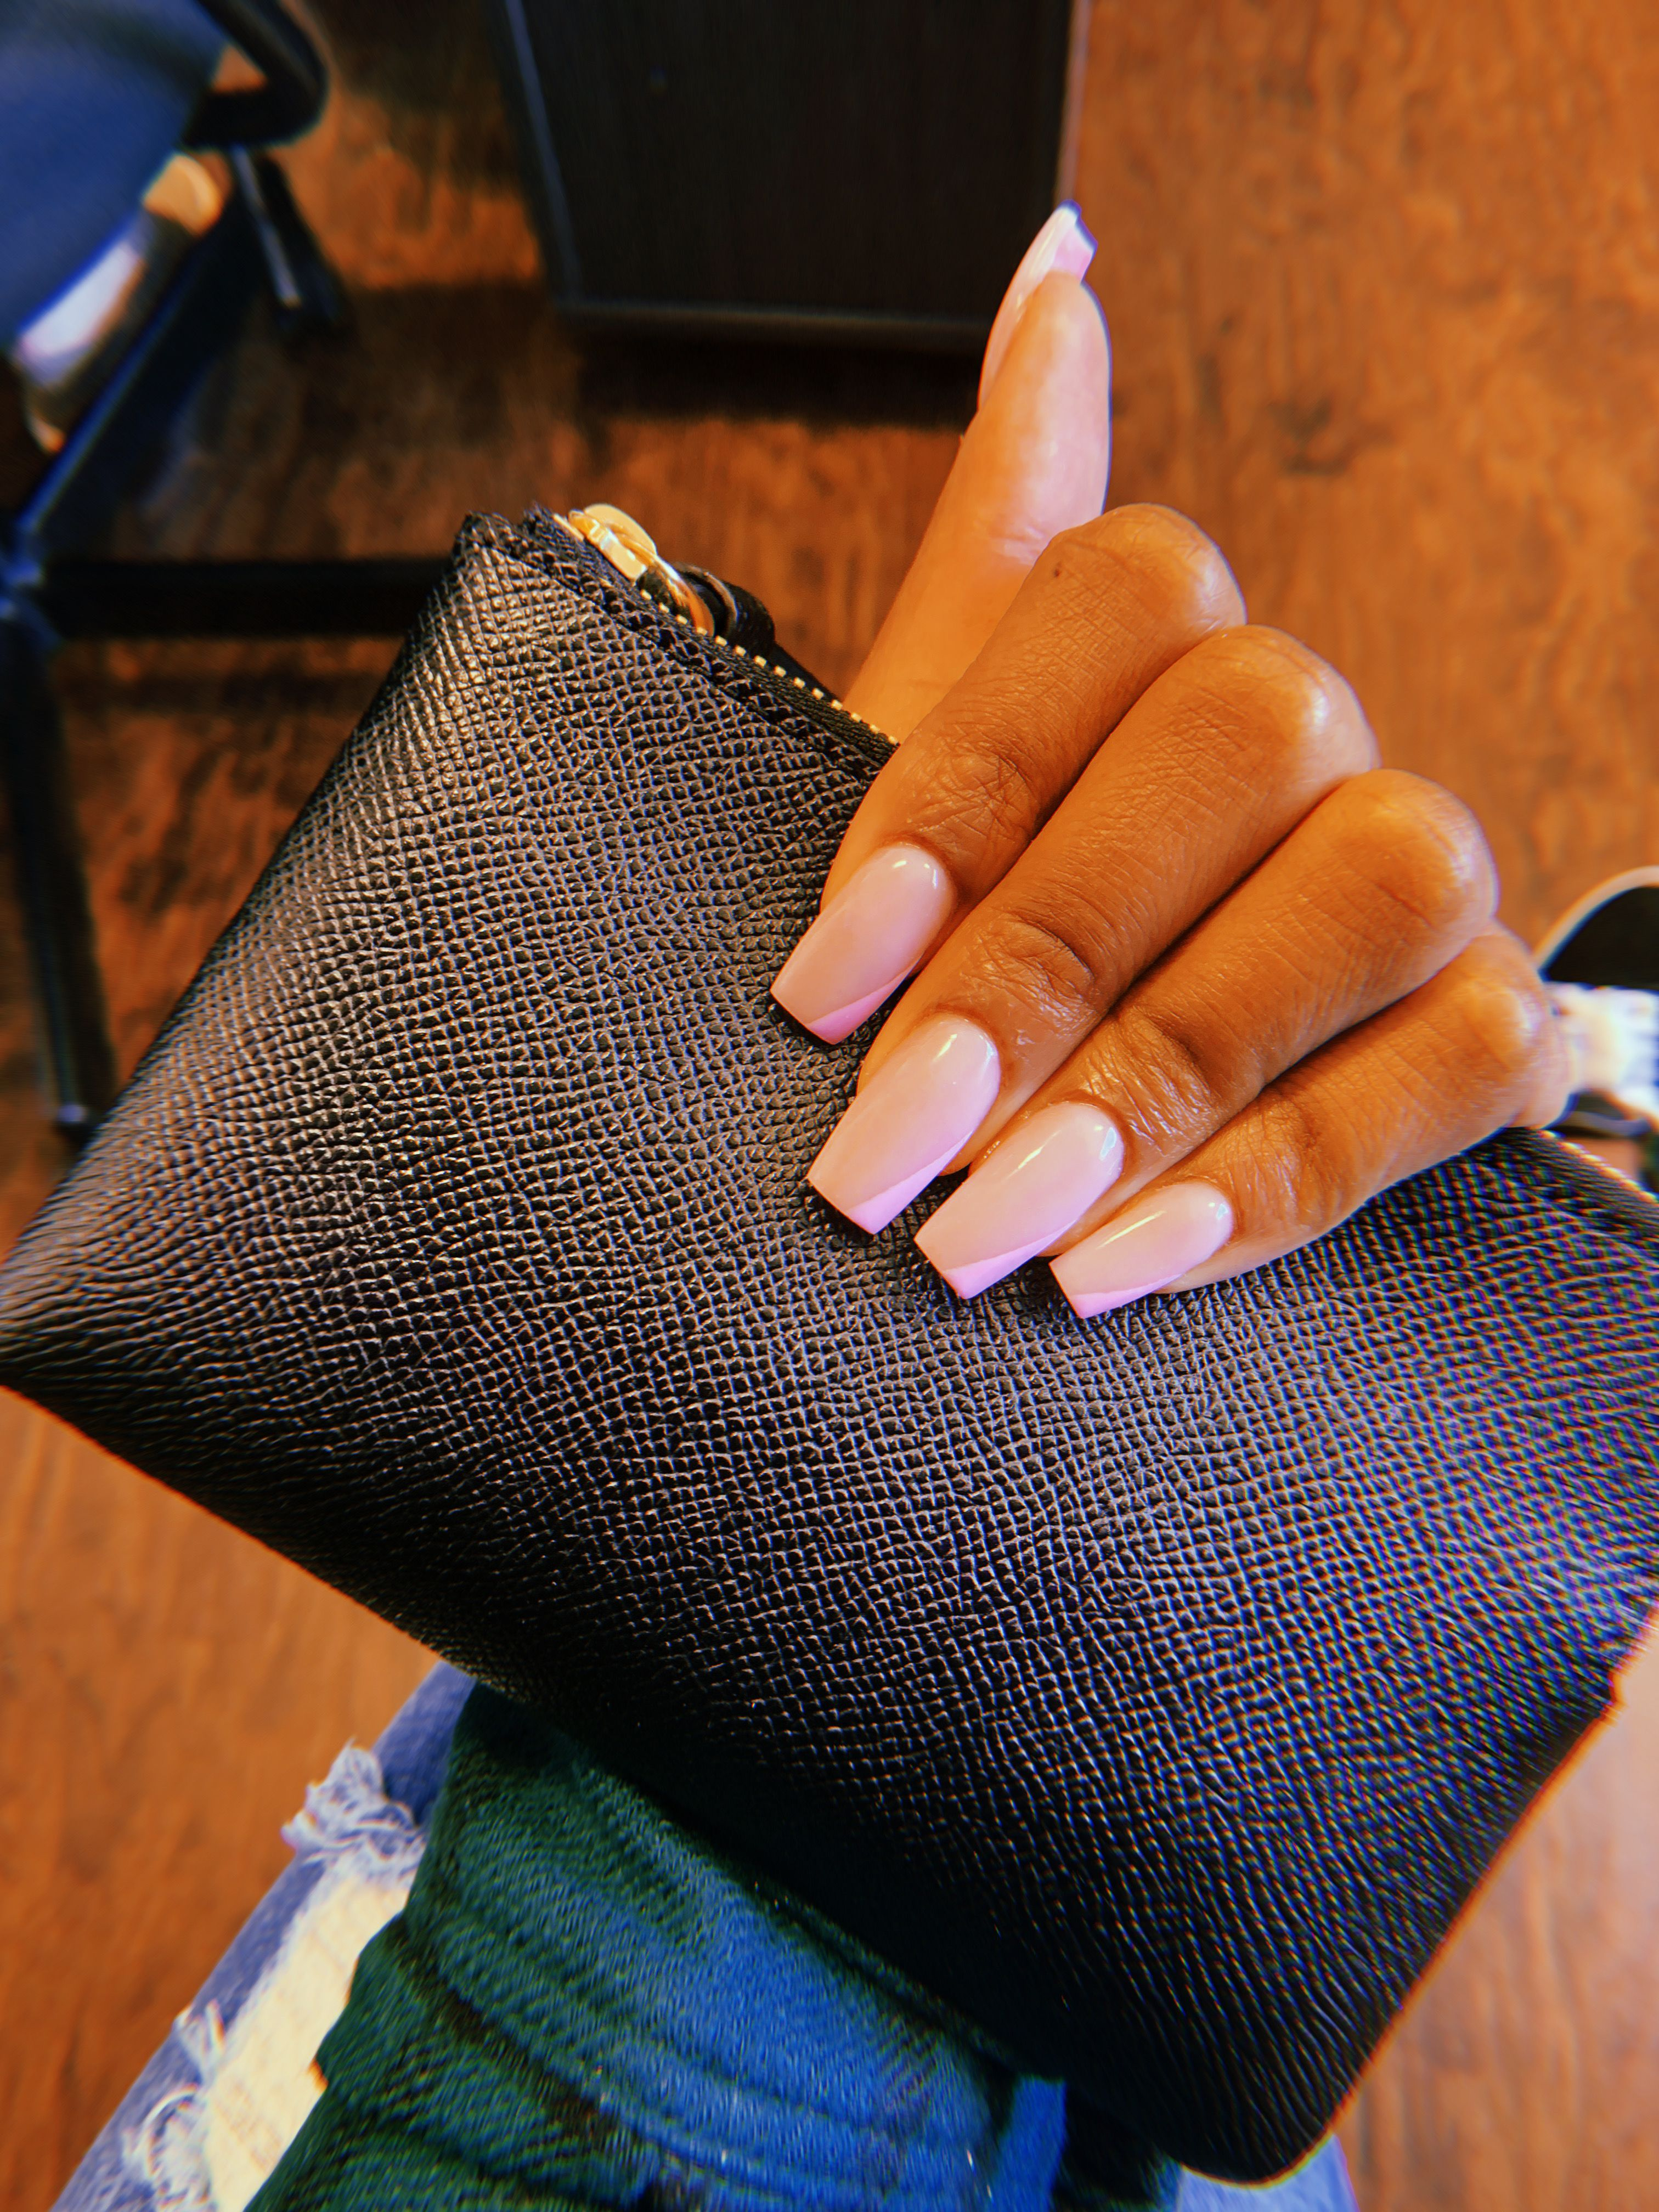 Acrylic Nail Design In 2020 Coffin Nails Designs Acrylic Nails Simple Nail Designs